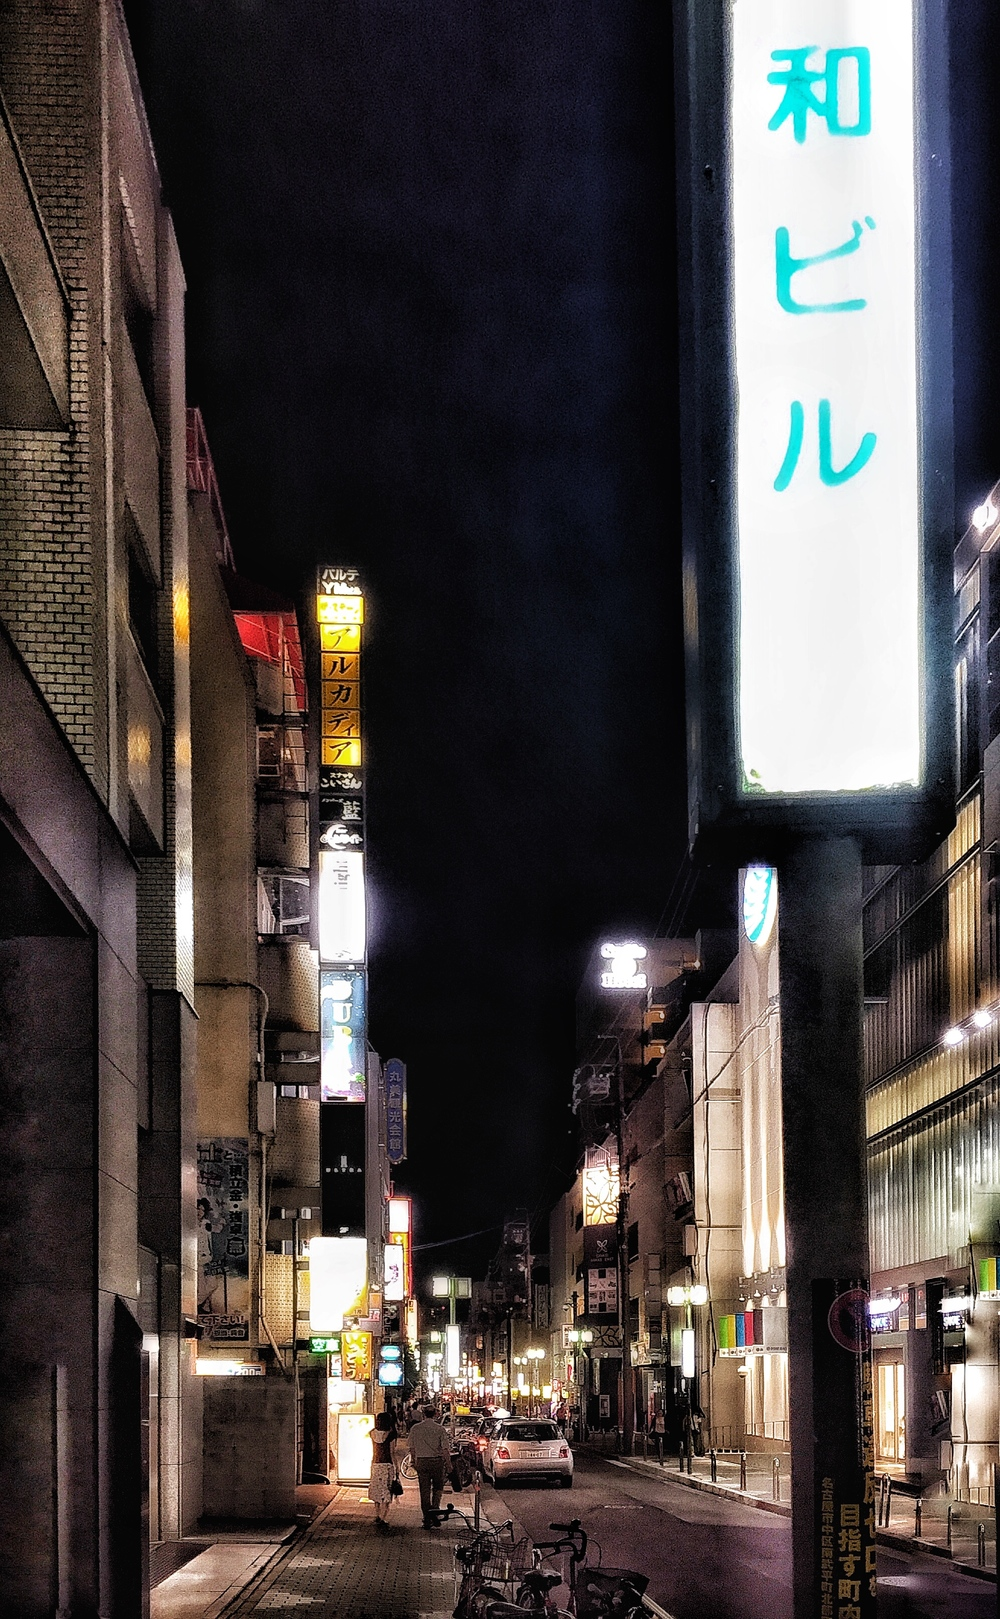 night in Nagoya